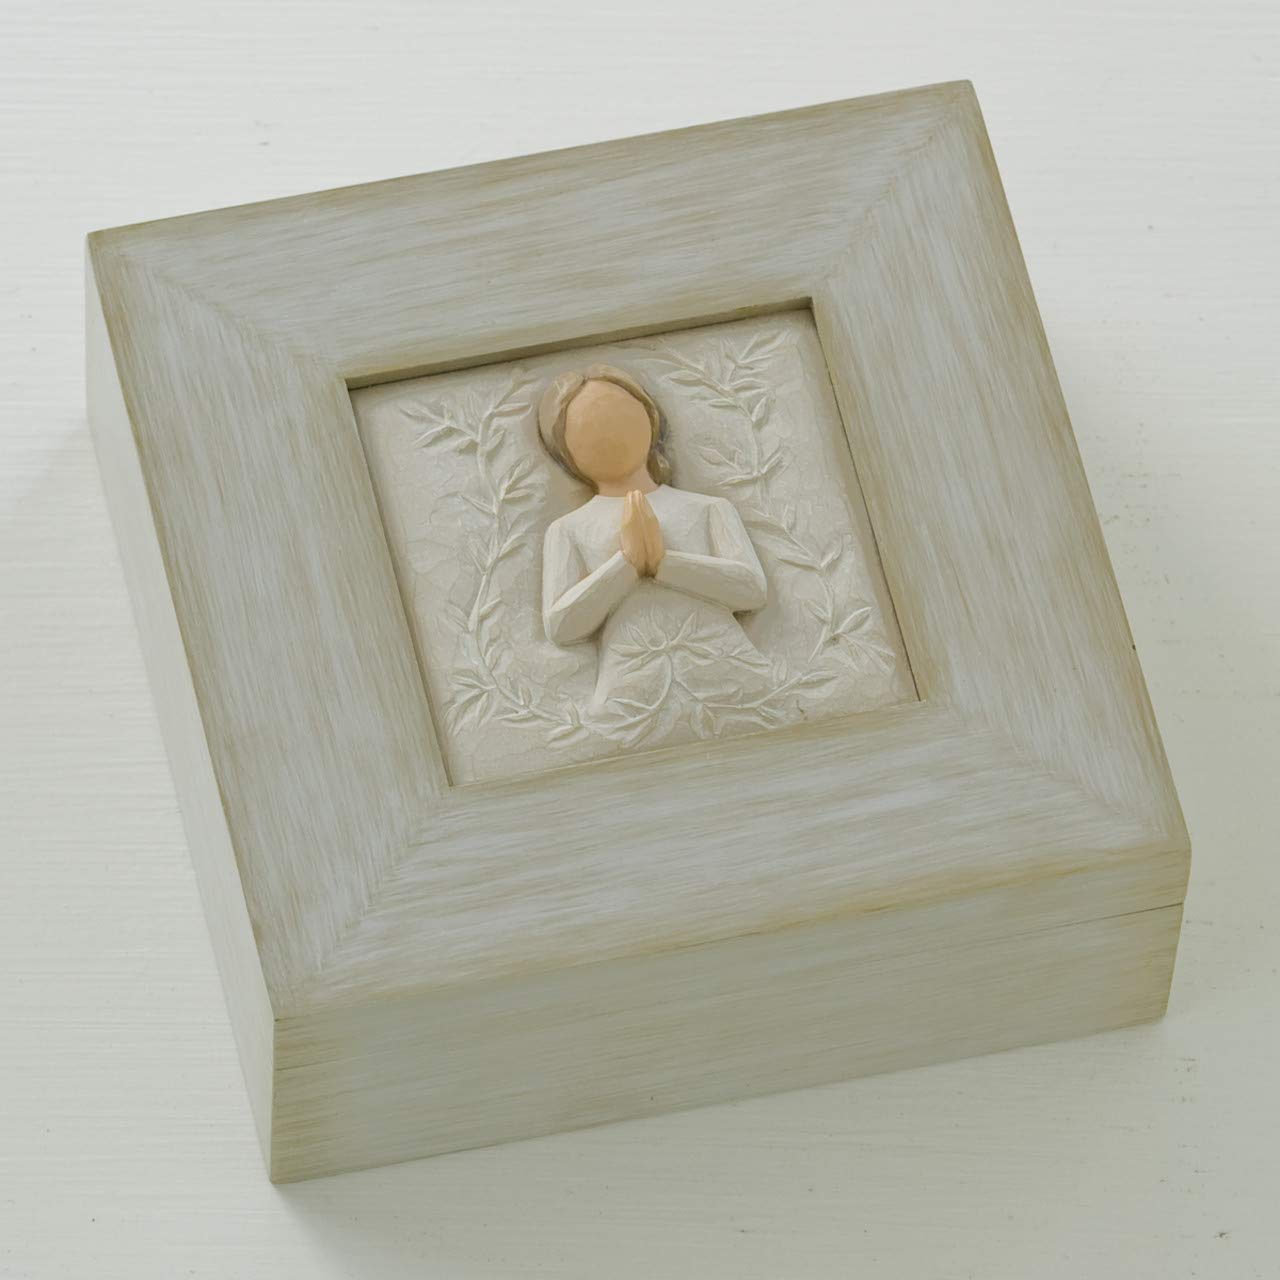 Willow Tree a tree, a prayer , sculpted hand-painted memory box by Willow Tree